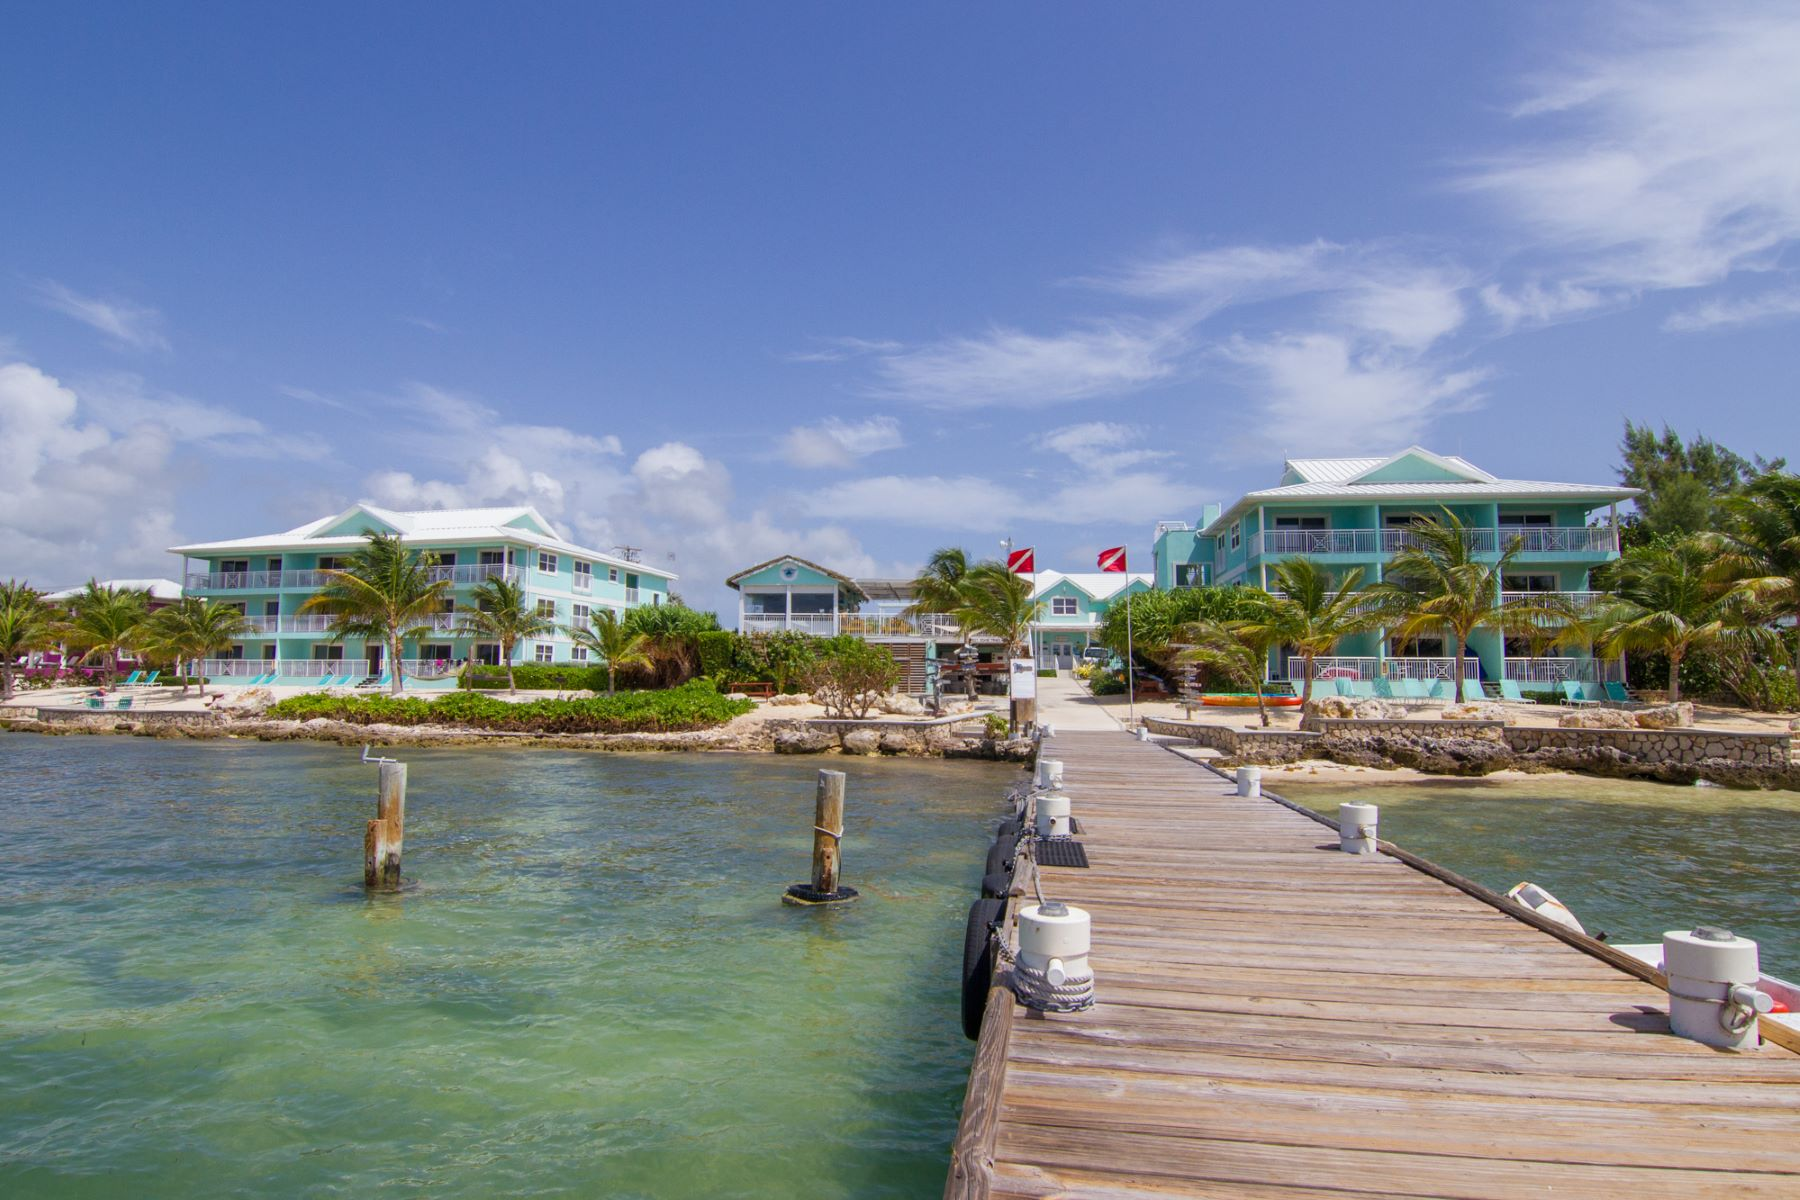 Condominium for Sale at Compass Point Dive Resort Compass Point #316 342 Austin Conolly Dr East End, Grand Cayman, KY1 Cayman Islands